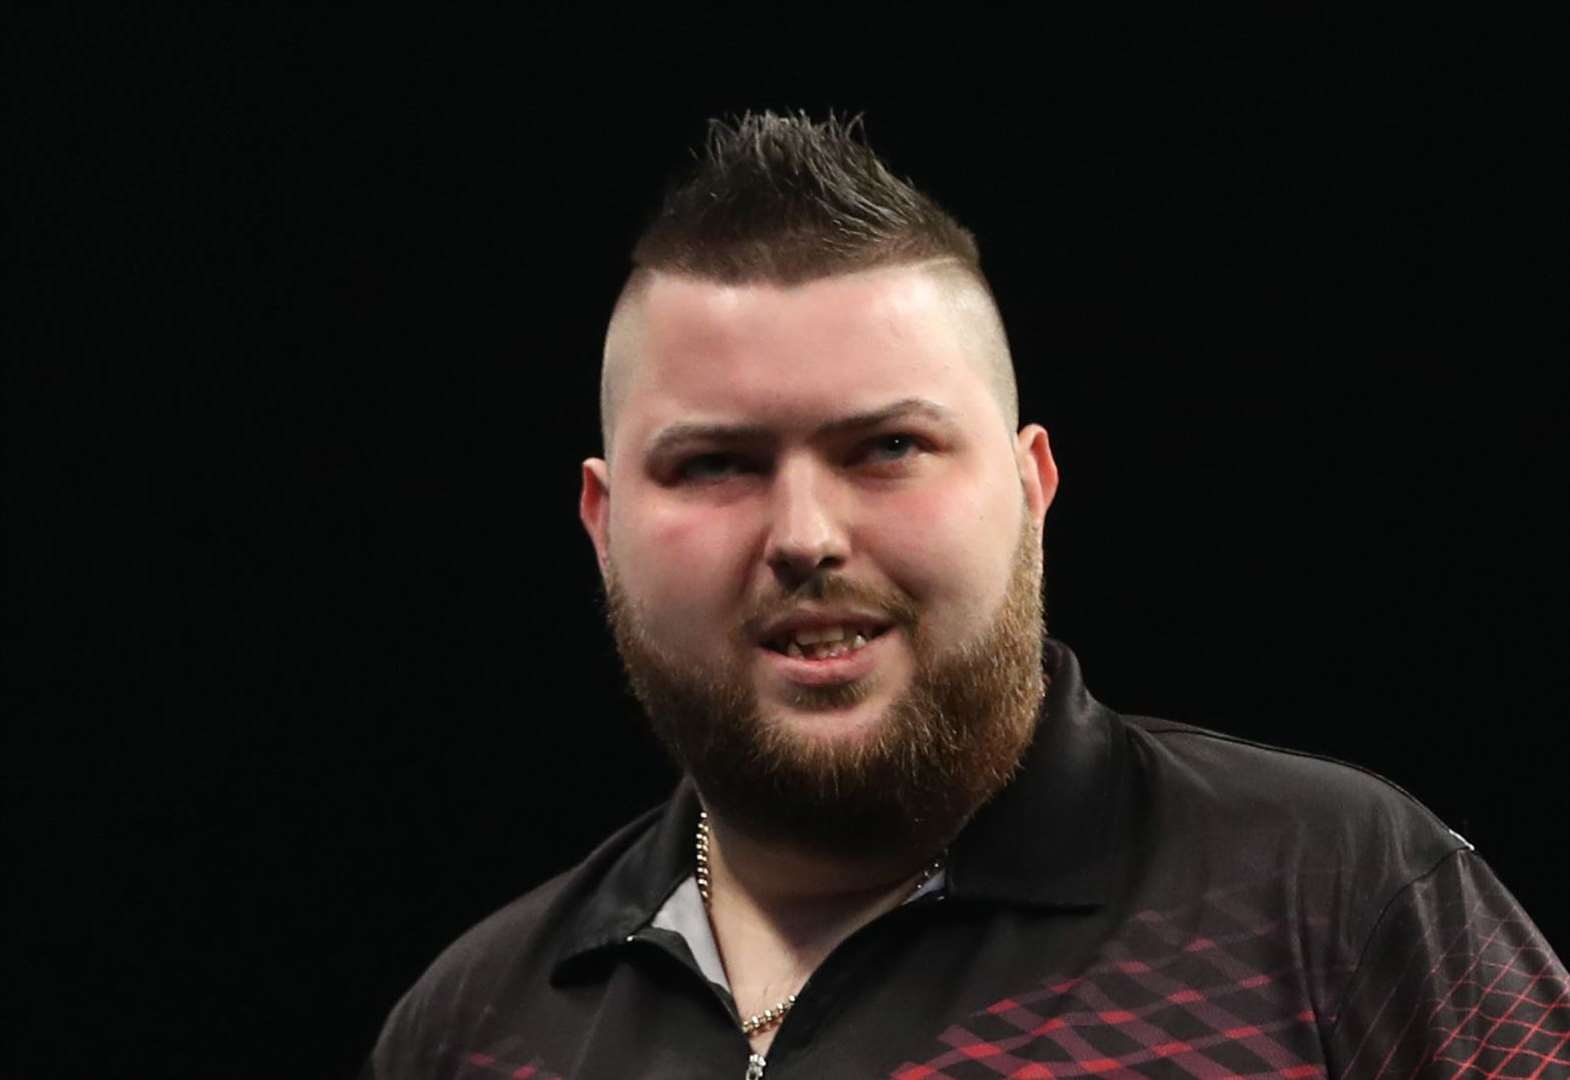 WIN: Tickets for meet and greet with darts star Michael Smith